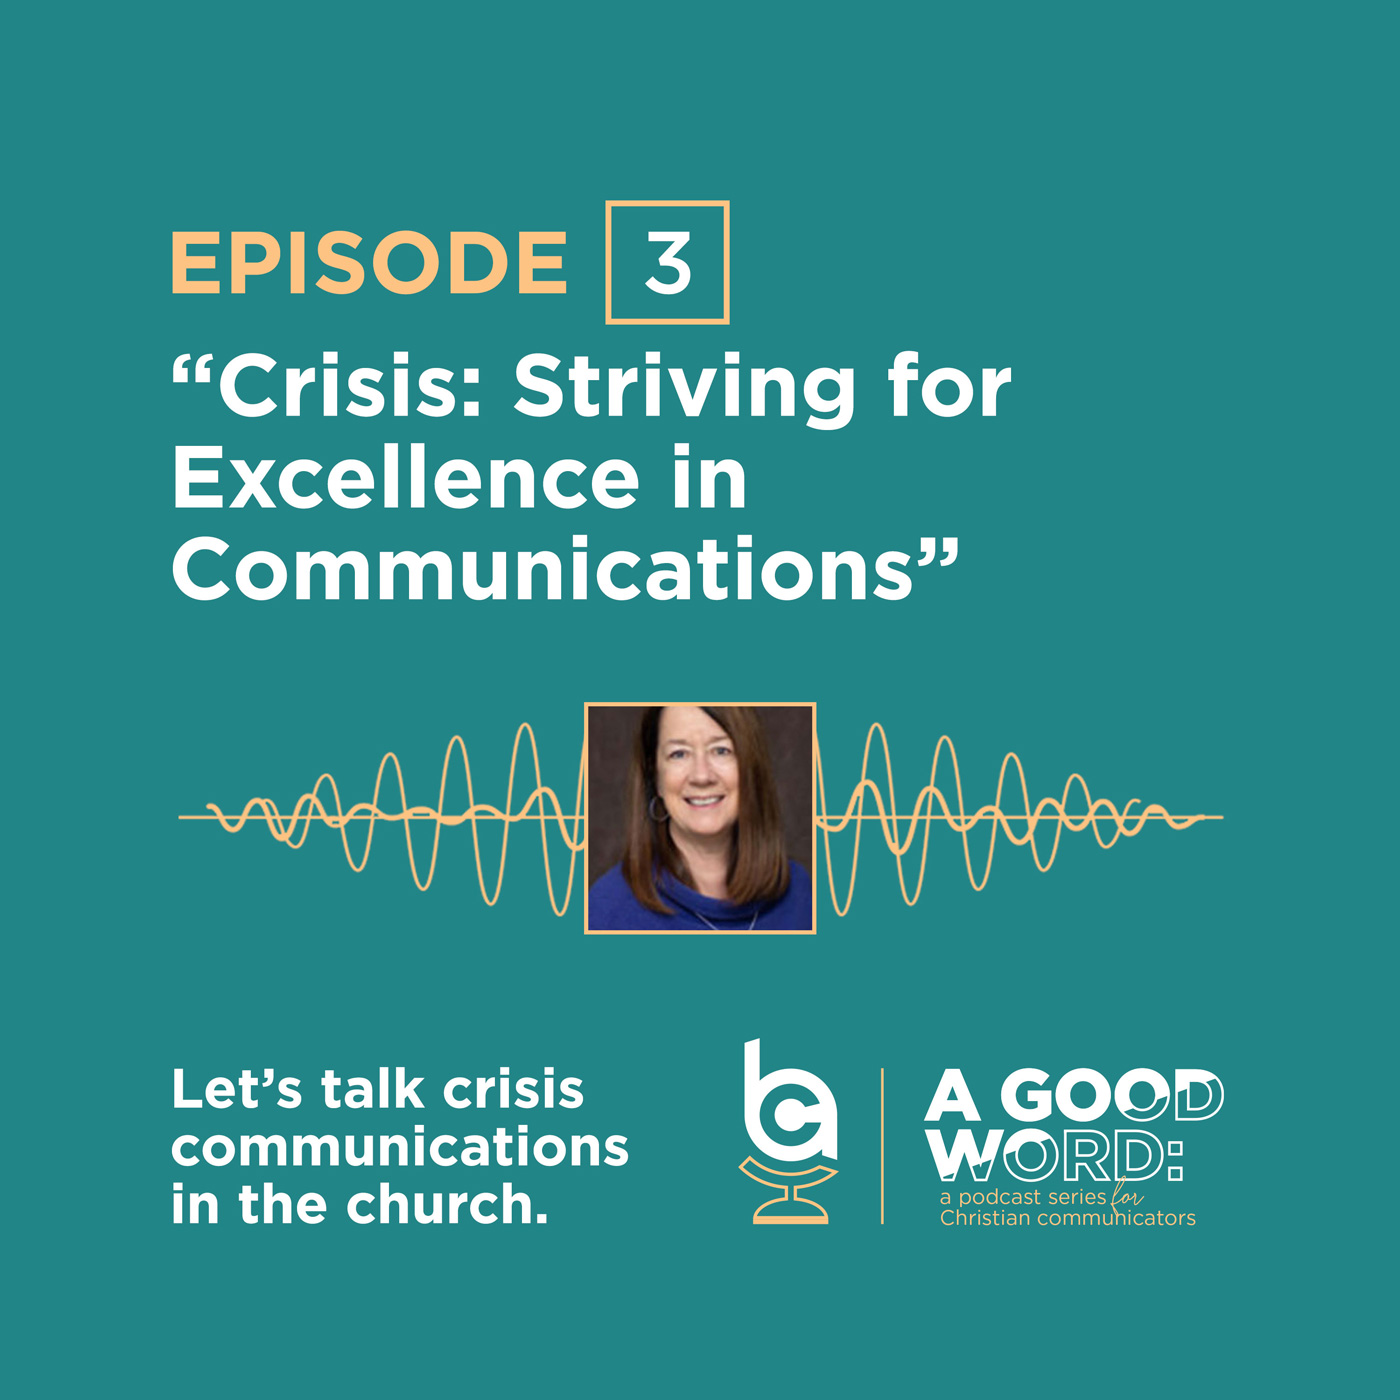 Episode 3: Crisis: Striving for Excellence in Communications